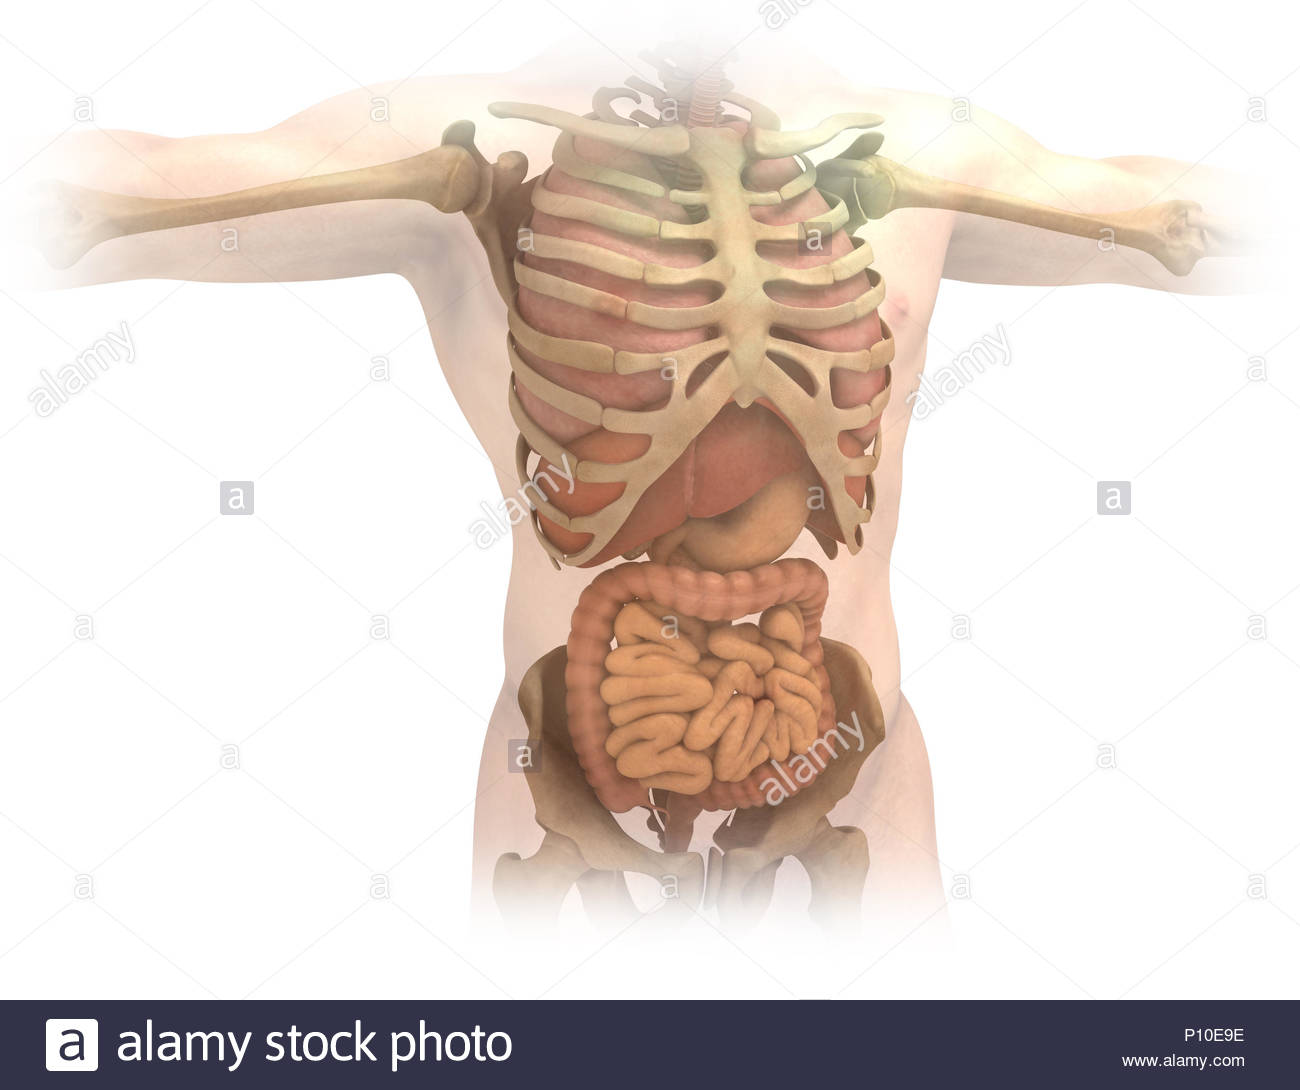 Organs And Skeleton Of The Trunk Stock Photo 207150314 Alamy